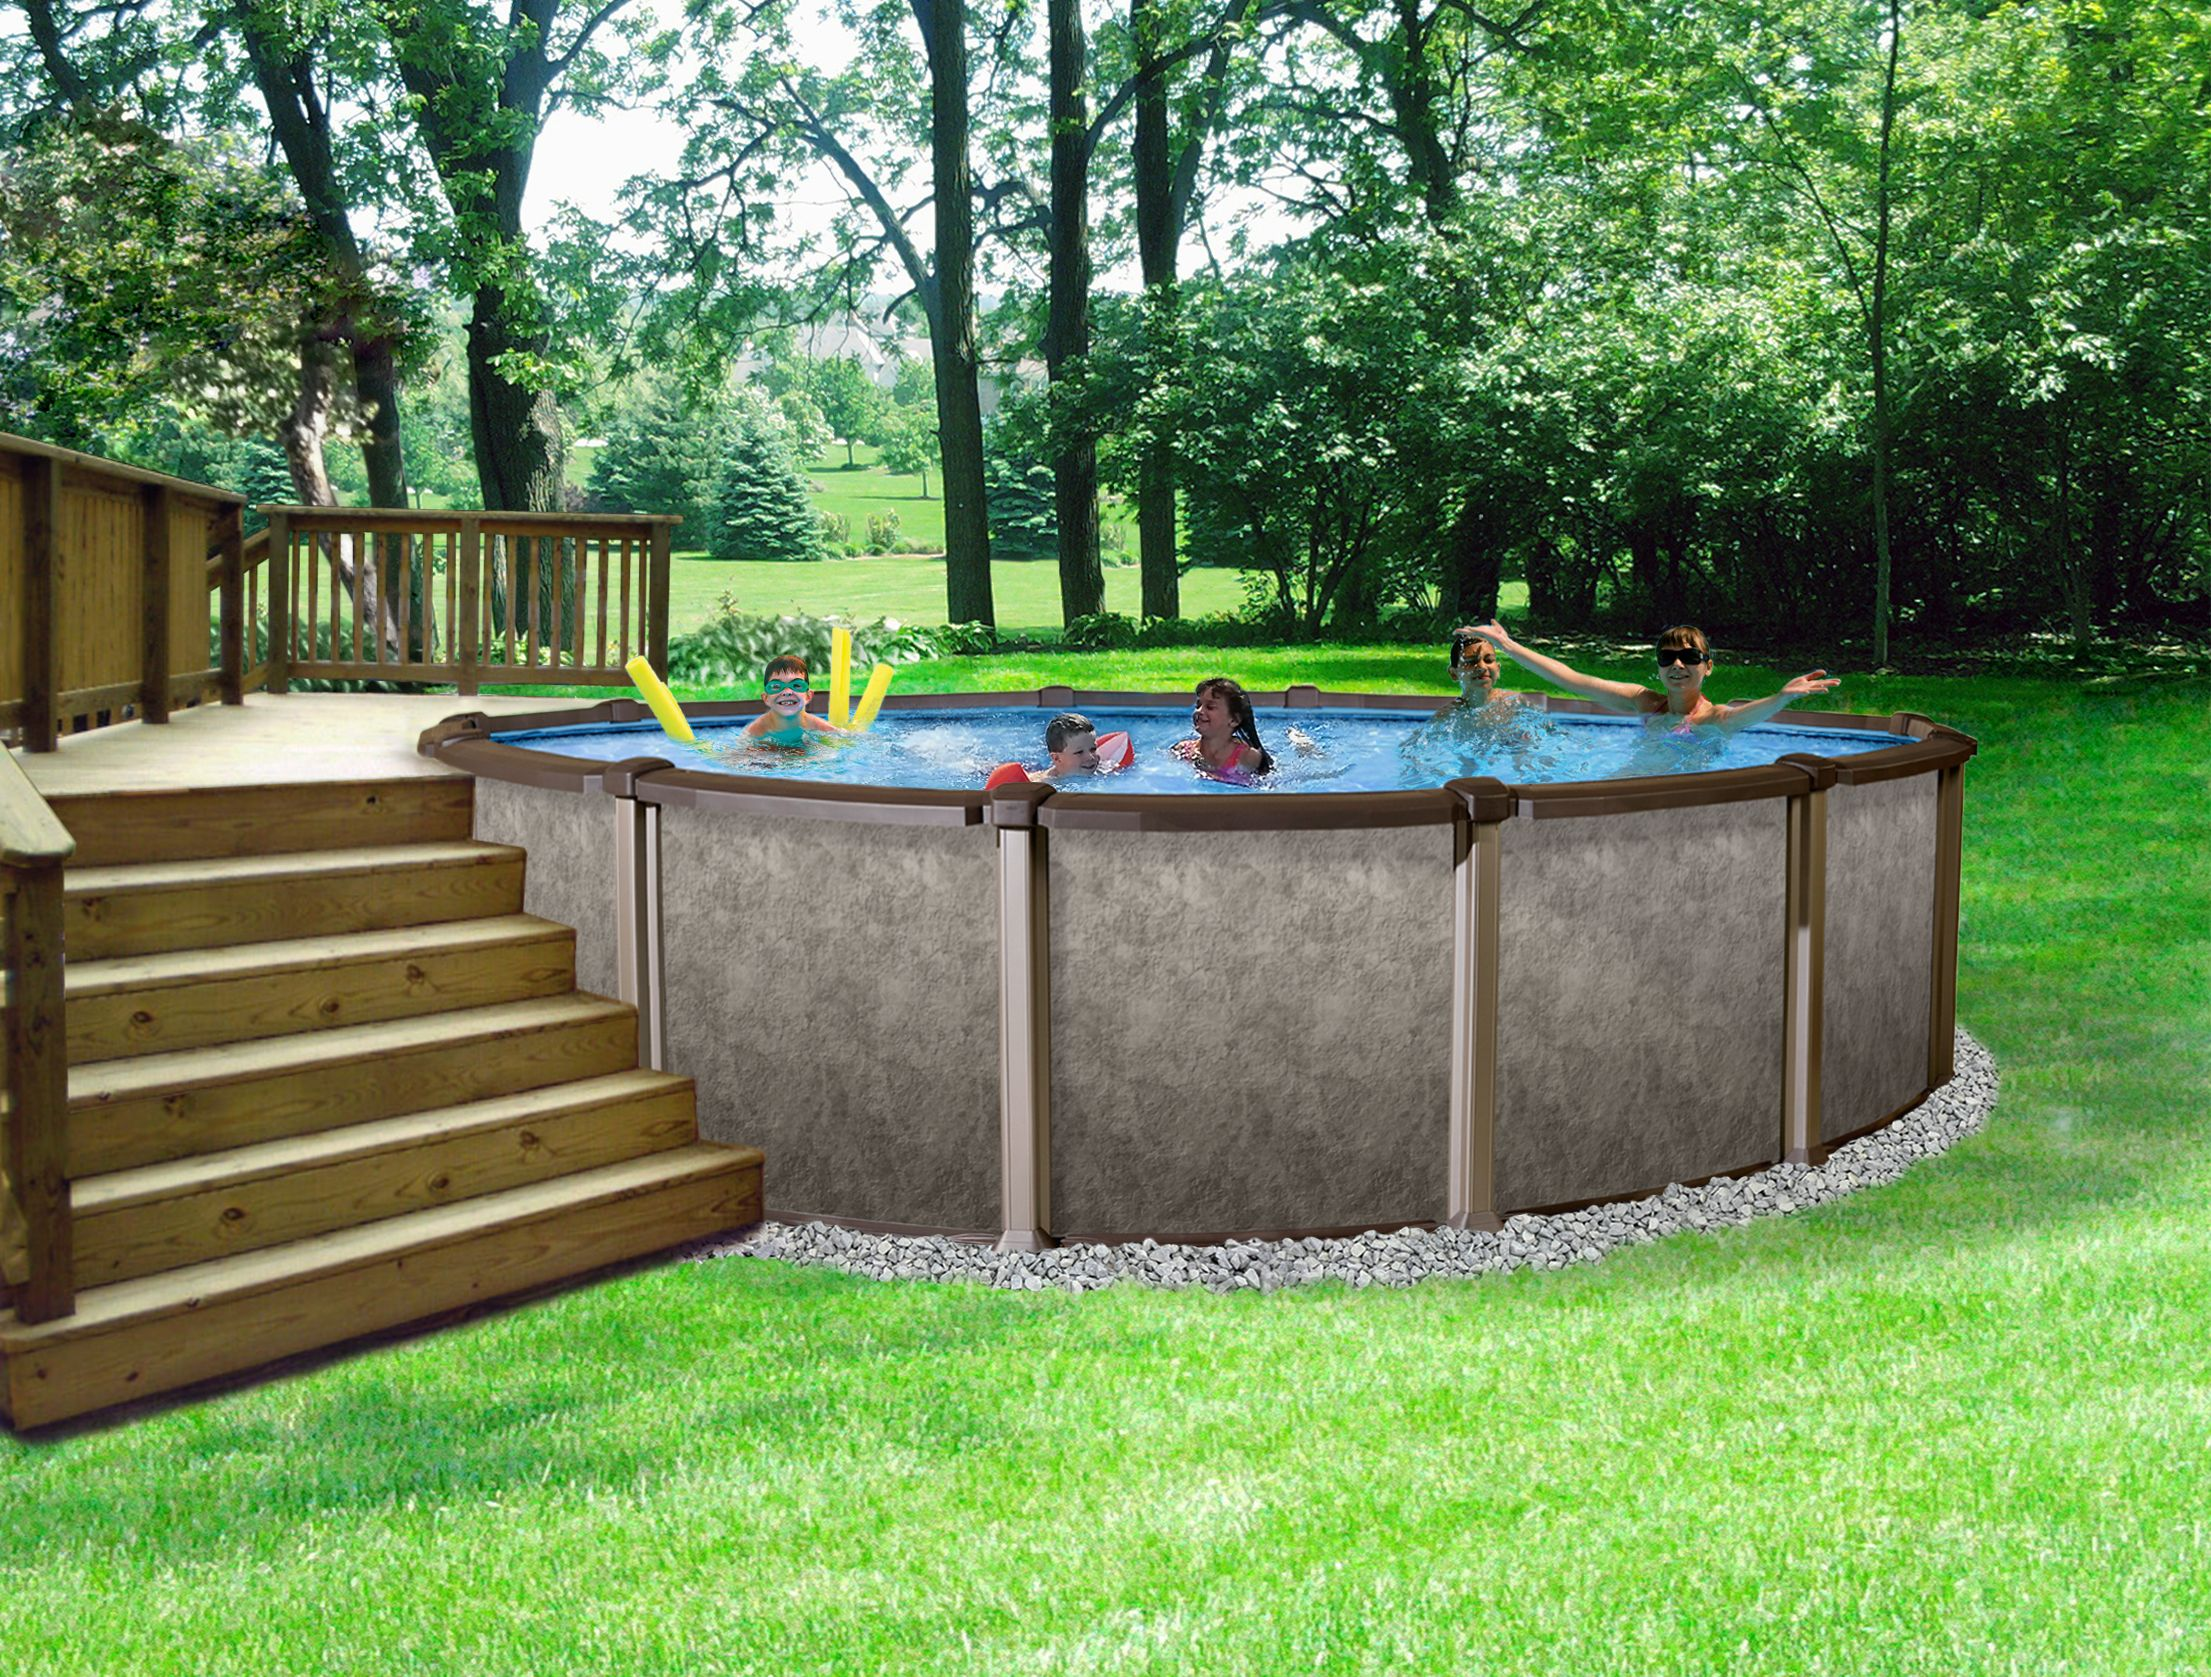 Backyard ideas with above ground pools - 40 Uniquely Awesome Above Ground Pools With Decks